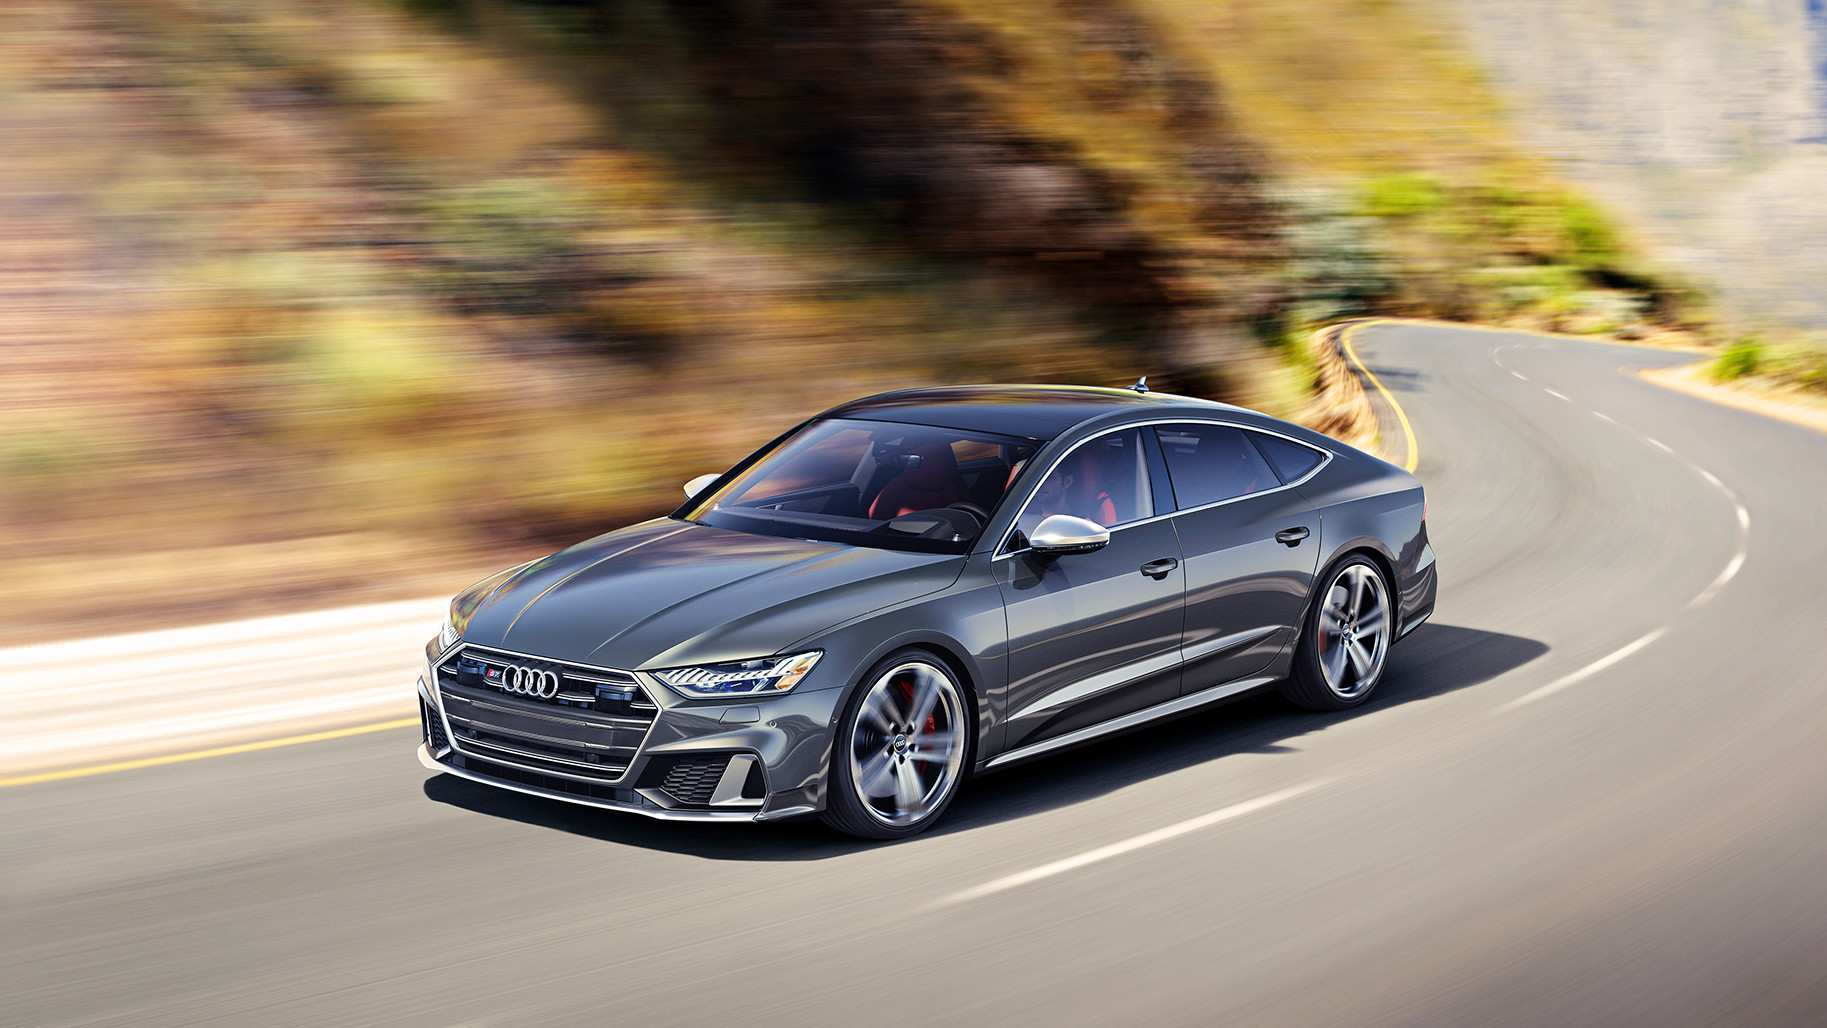 95 All New Audi S7 2020 Concept